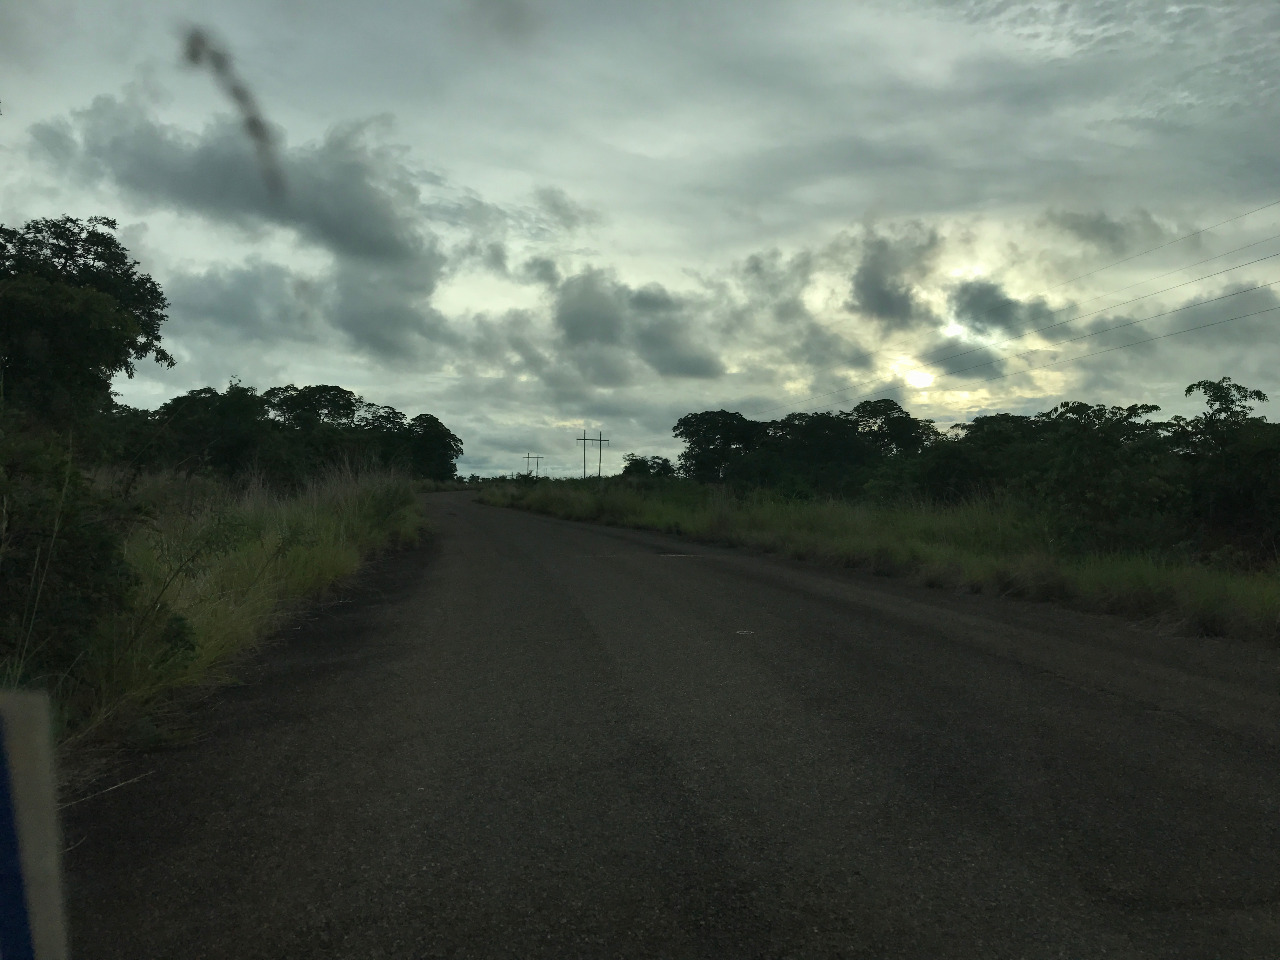 The road to Nkhotakota